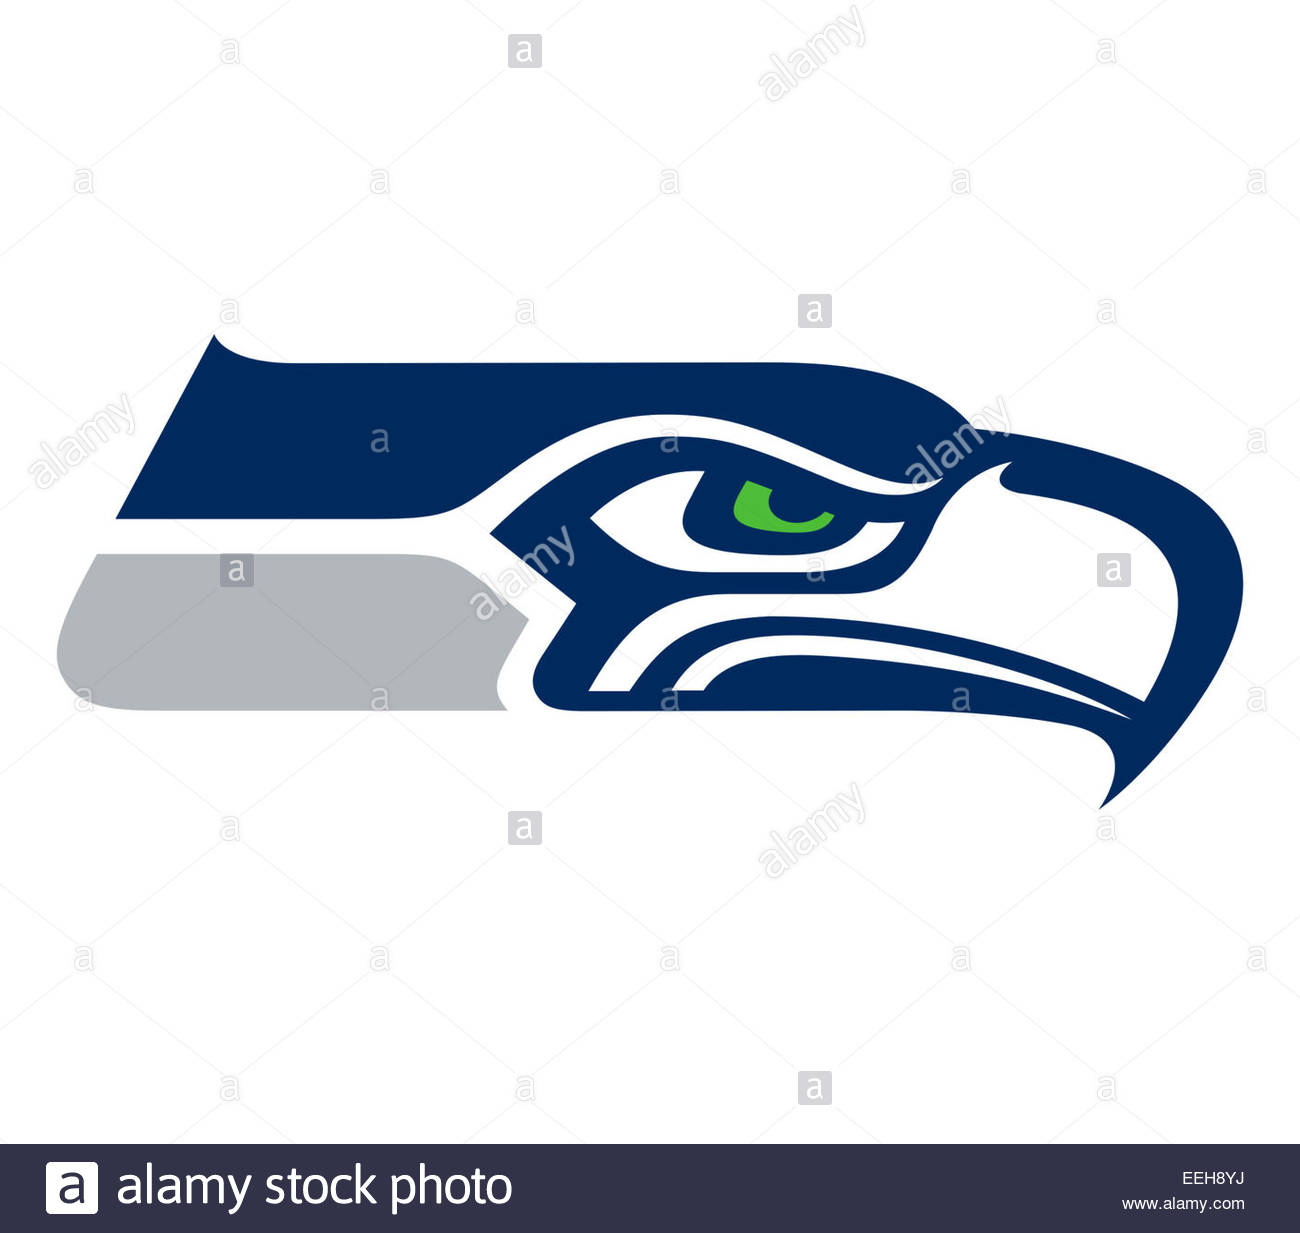 Seattle seahawks logo icon symbol stock photo 77826886 alamy seattle seahawks logo icon symbol biocorpaavc Image collections